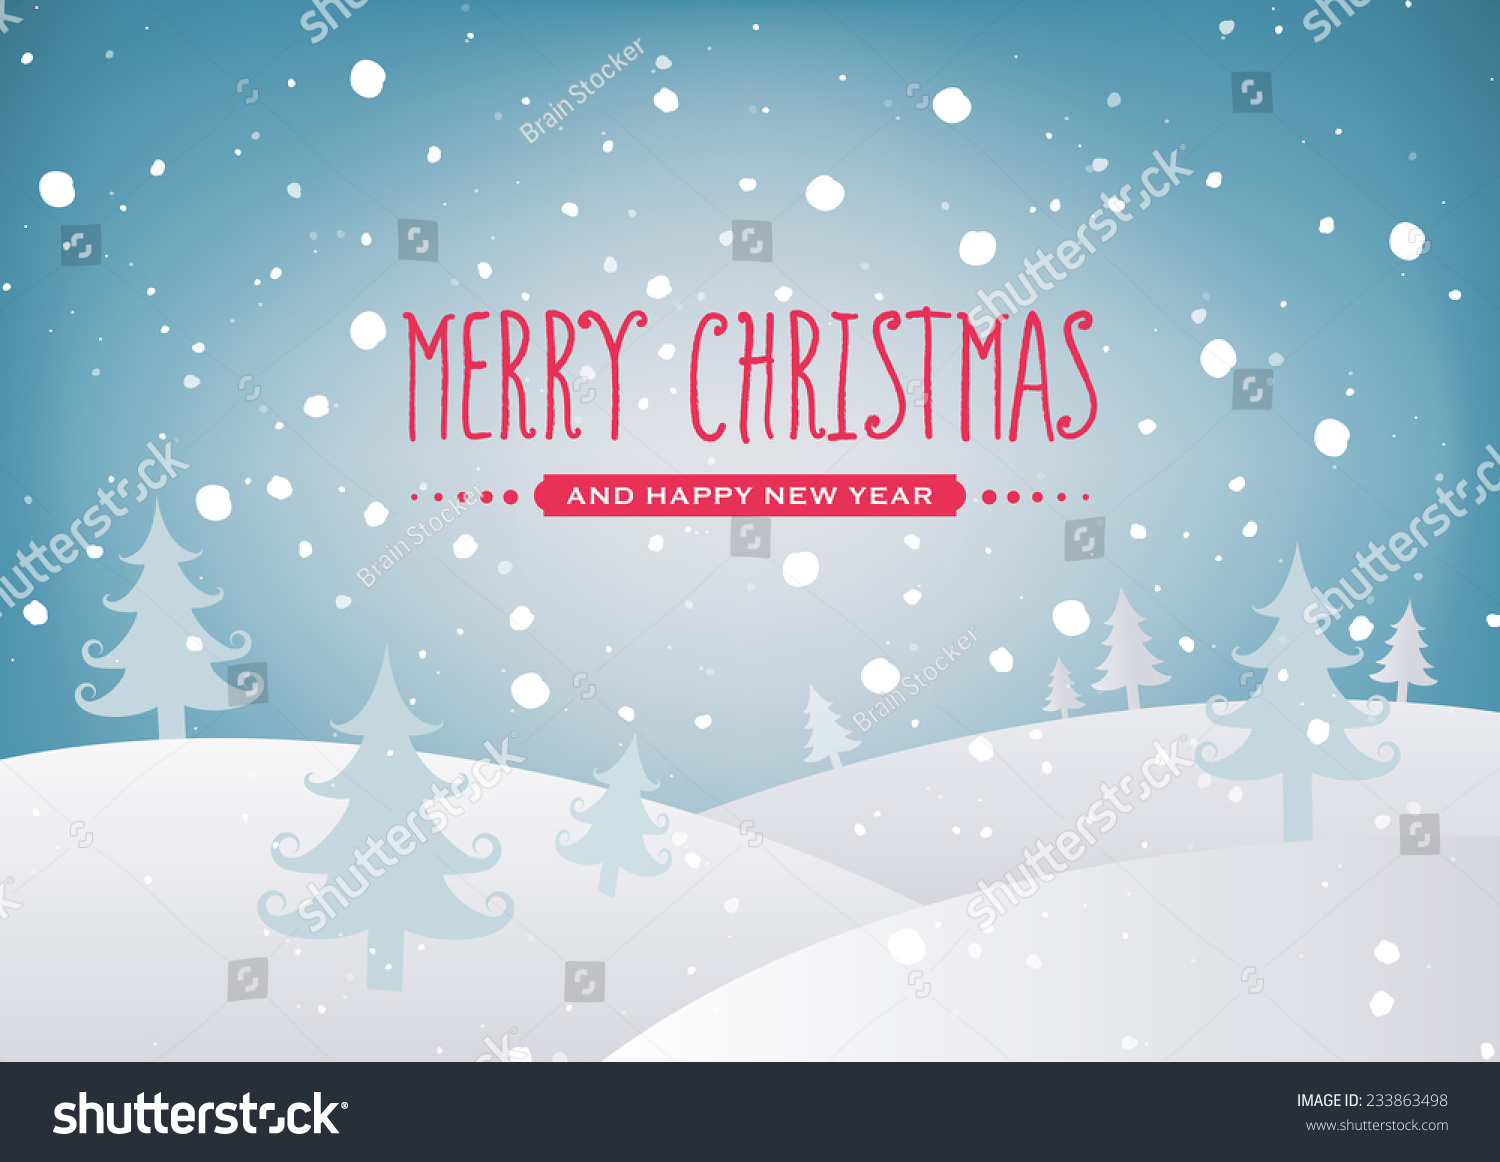 Merry Christmas Landscape Stock Vector (Royalty Free) 233863498 ...